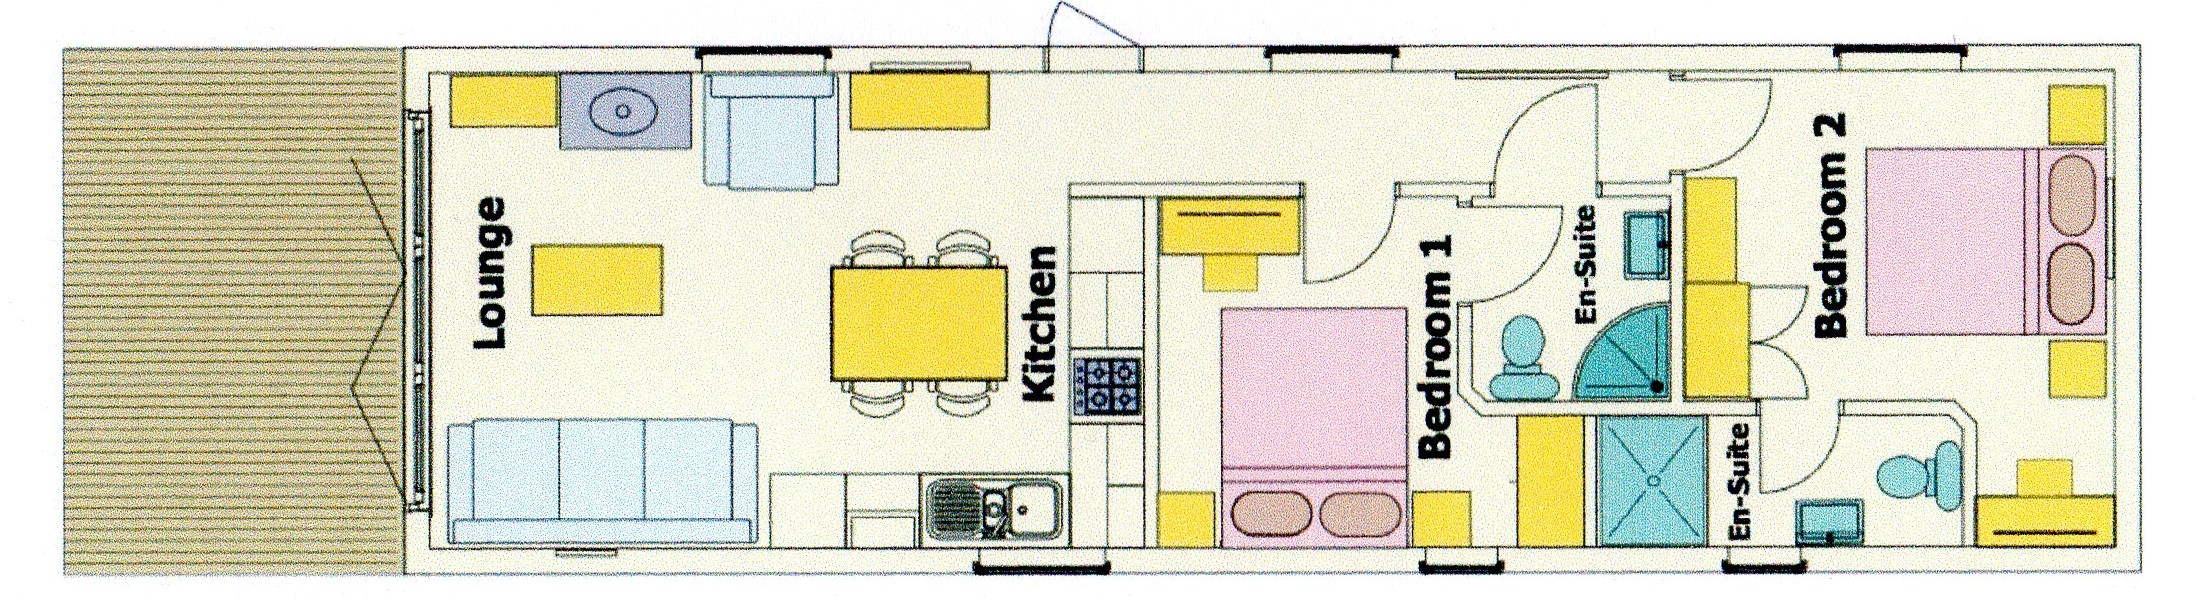 Puffin Lodge Floor Plan